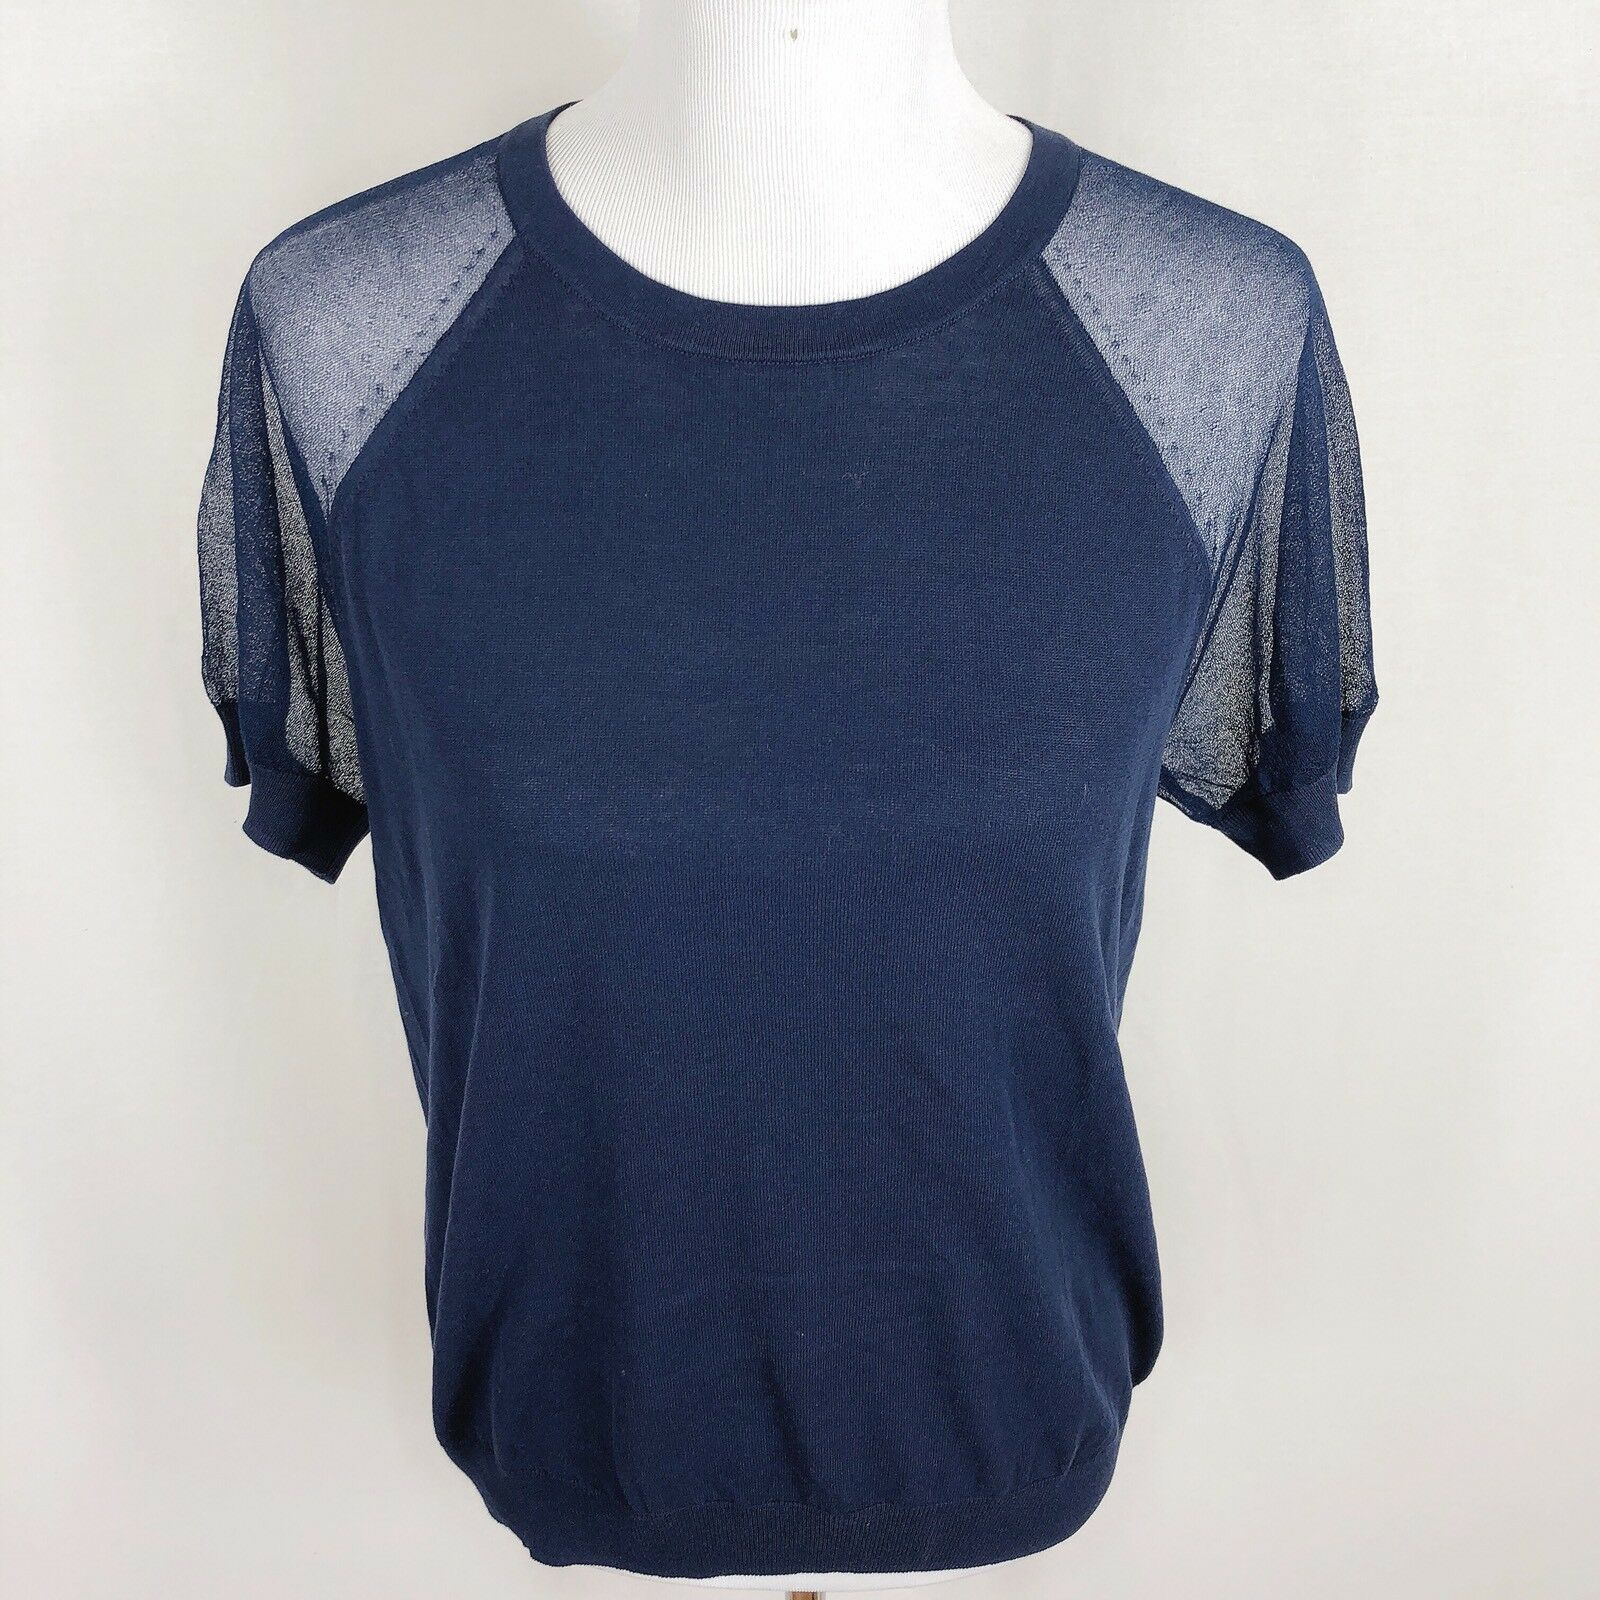 NEW J.Crew Women Small Navy bluee Two Tone Sheer Sleeve Crepe Sweater Top NWT  65